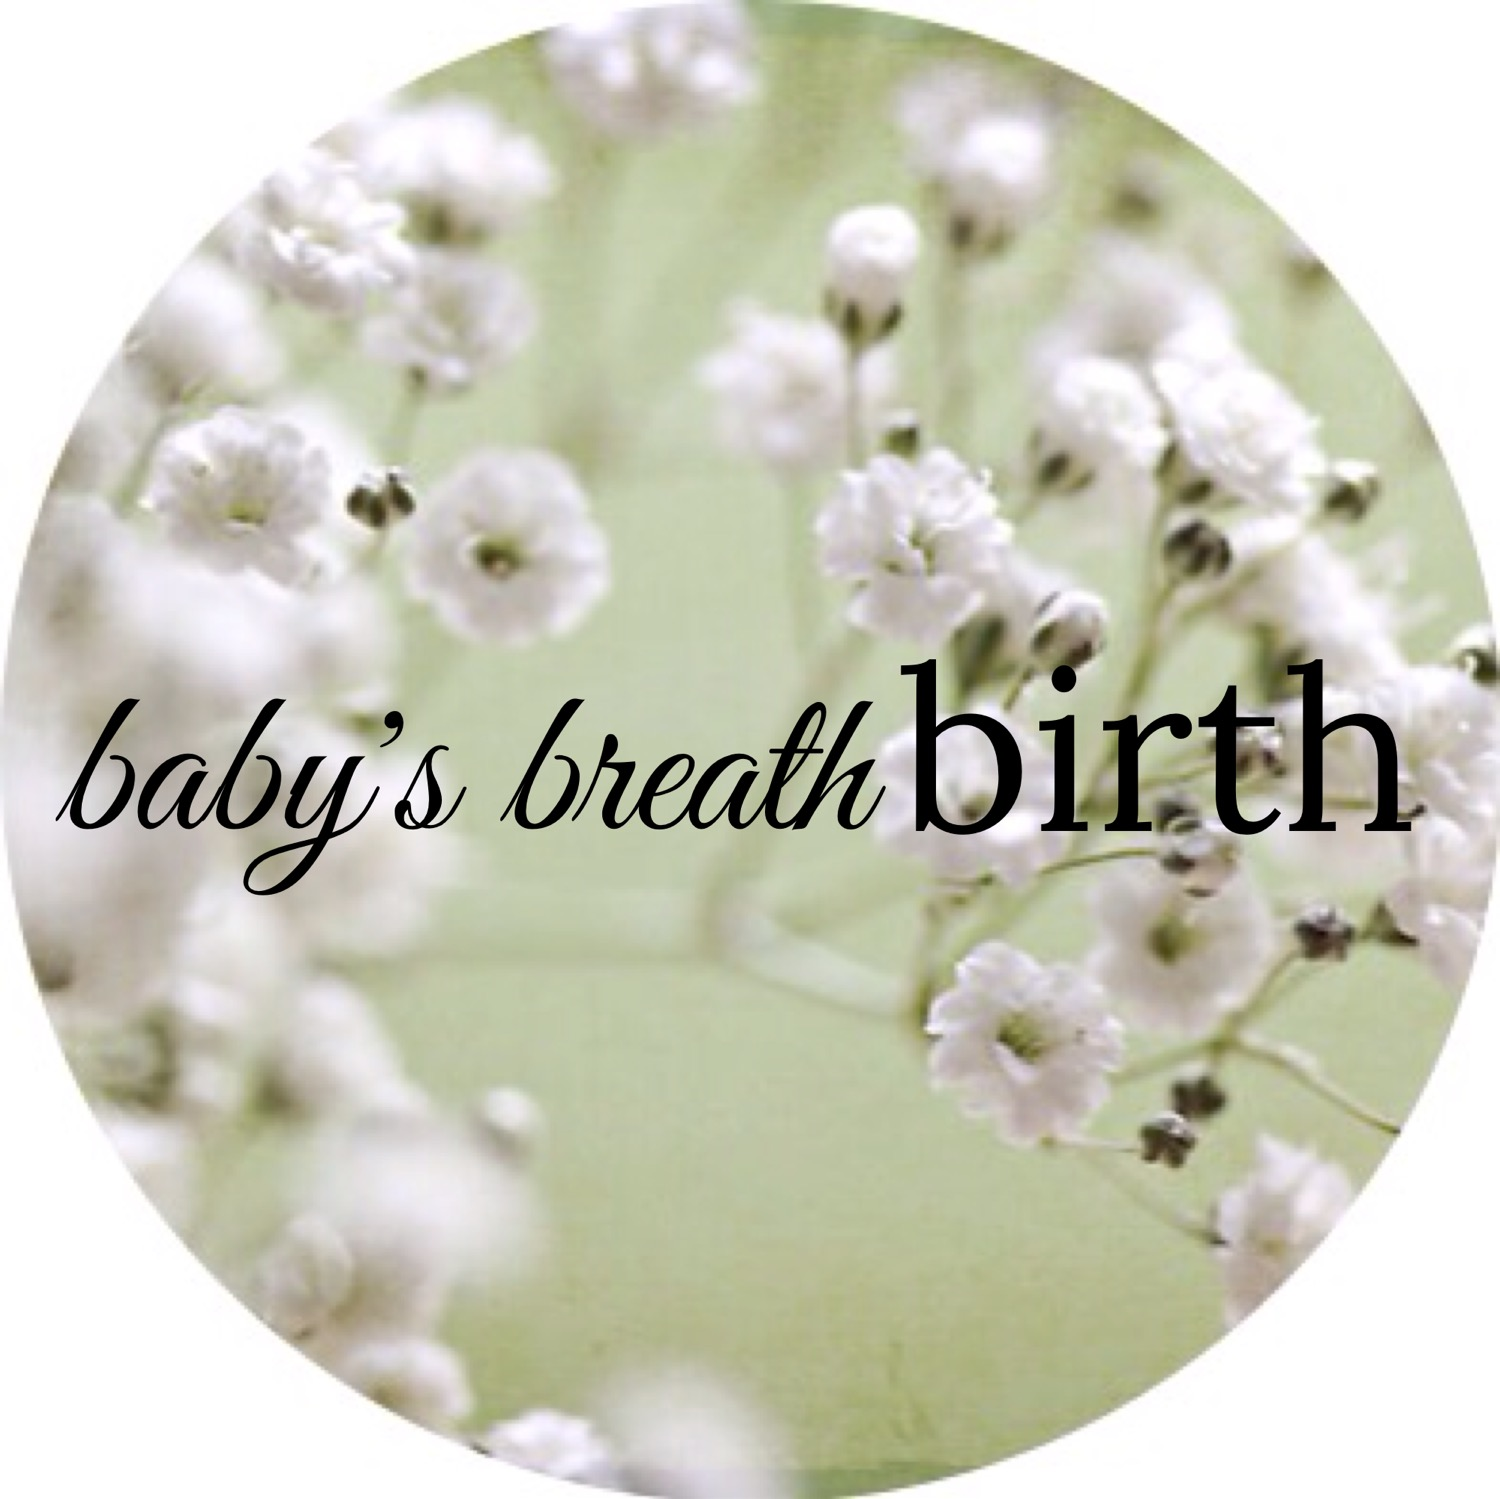 Baby's Breath Birth